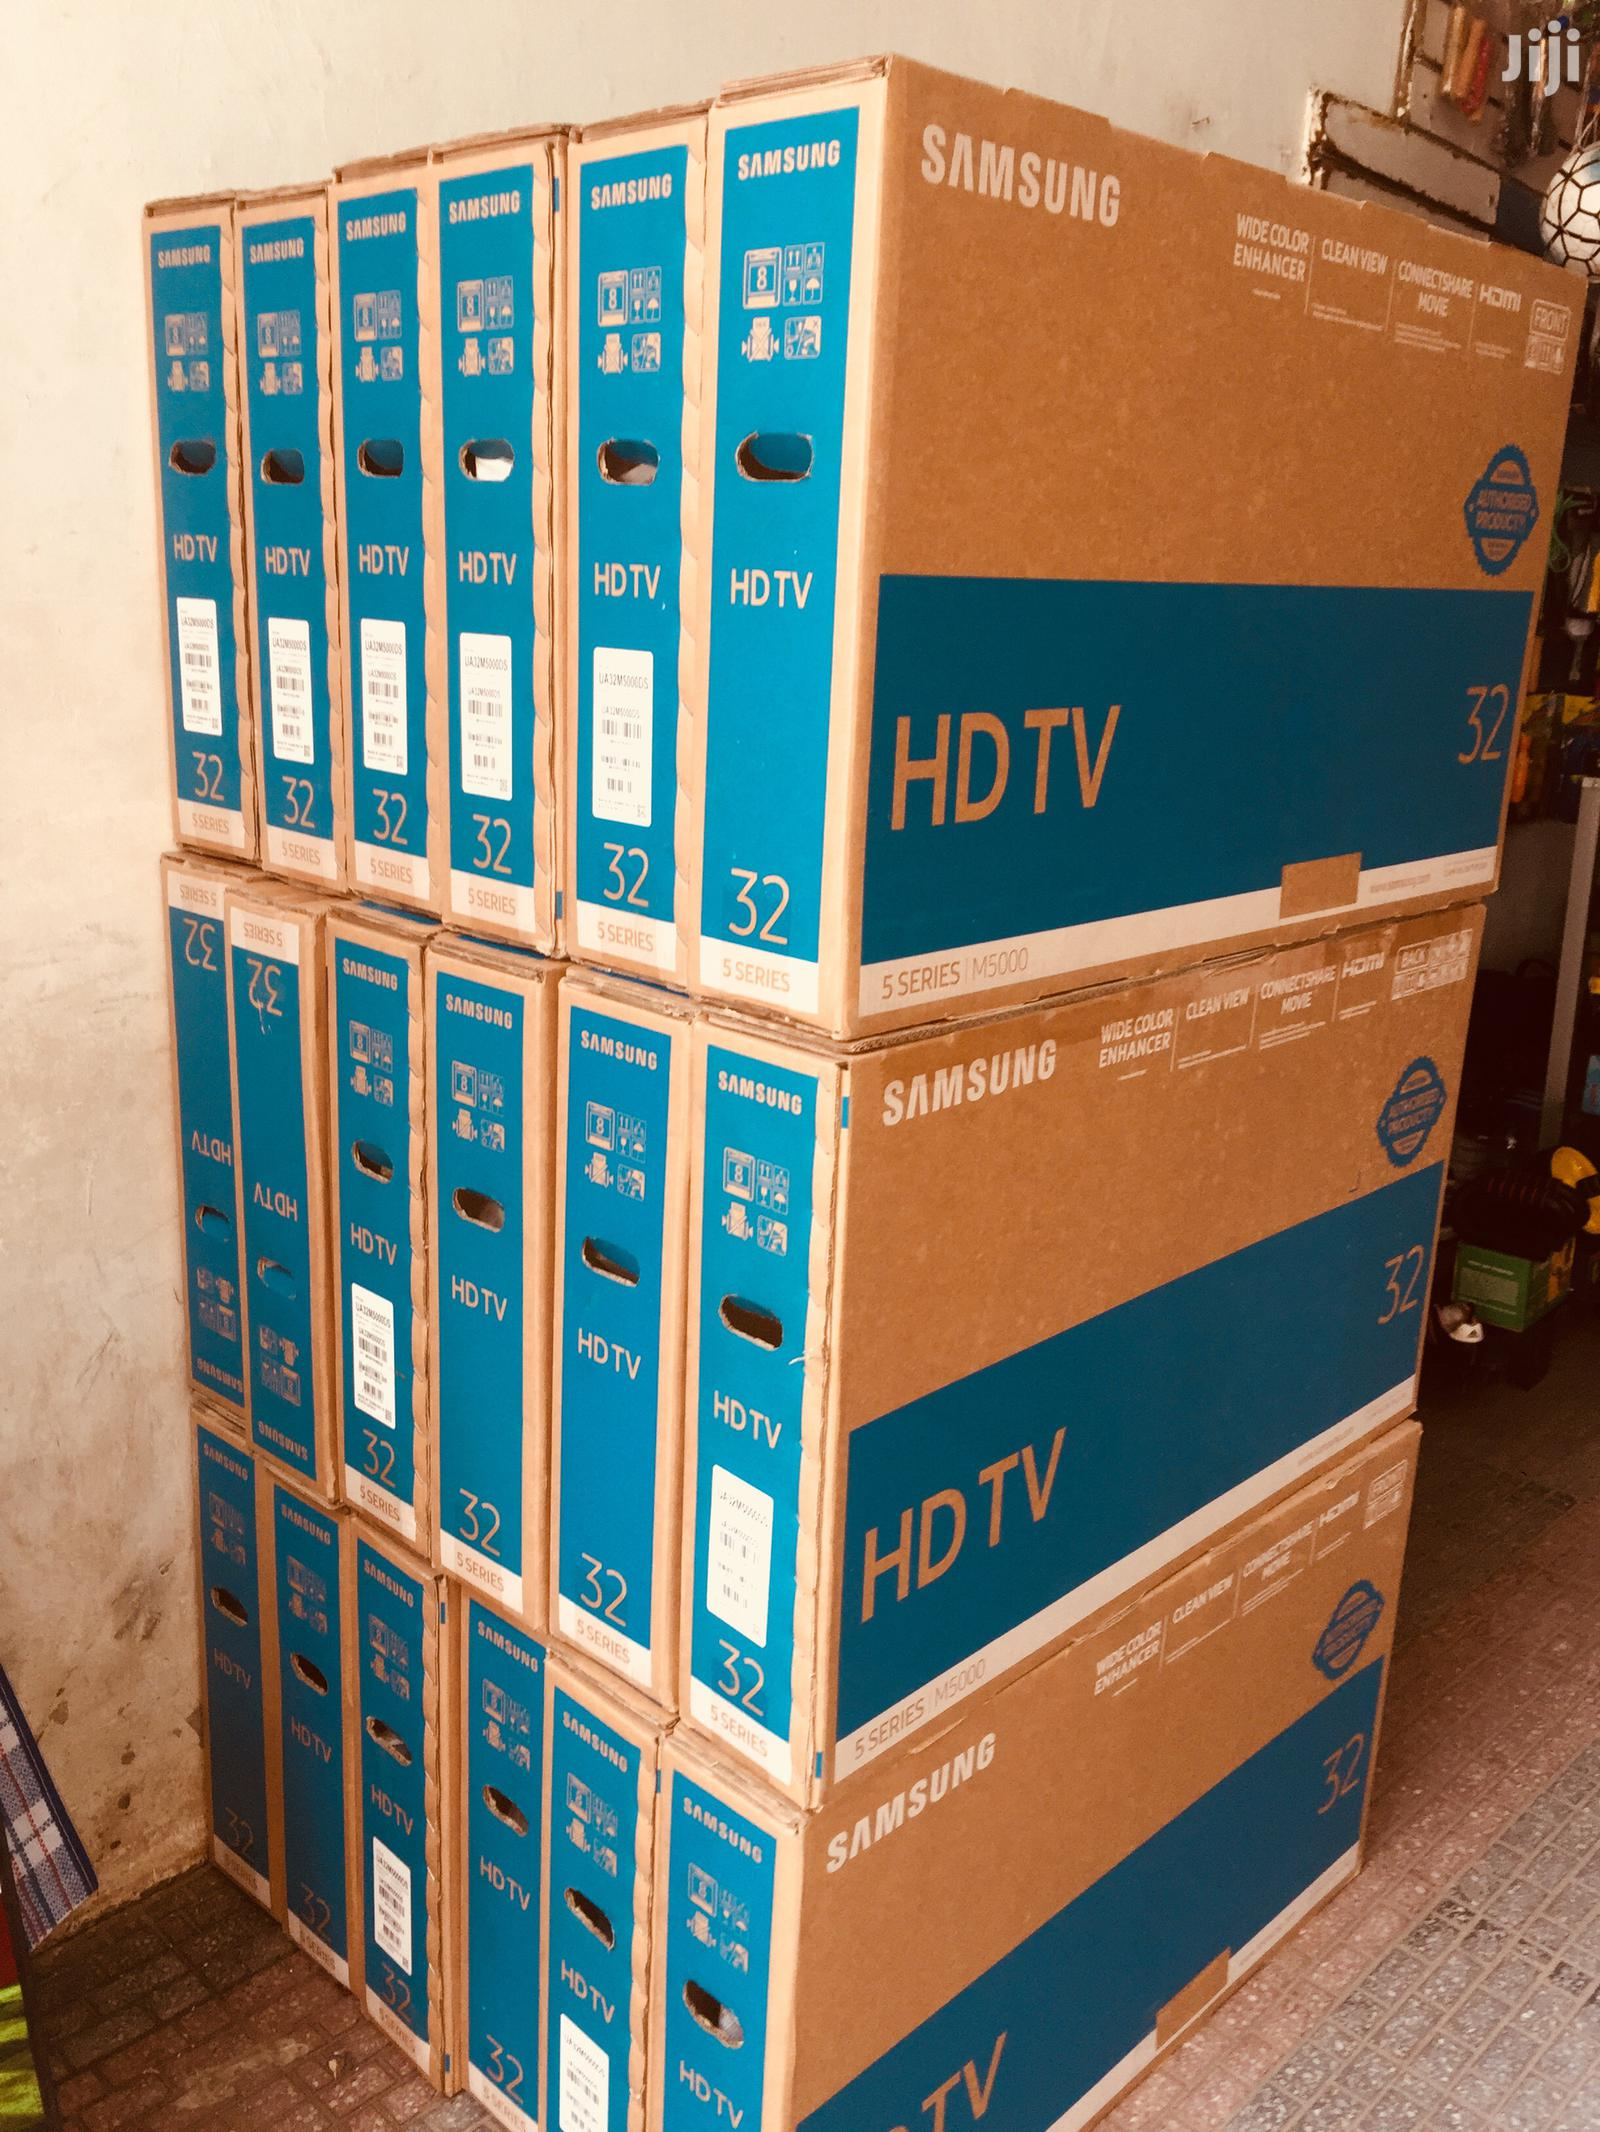 Samsung Tv 32 Inches | TV & DVD Equipment for sale in Ilala, Dar es Salaam, Tanzania